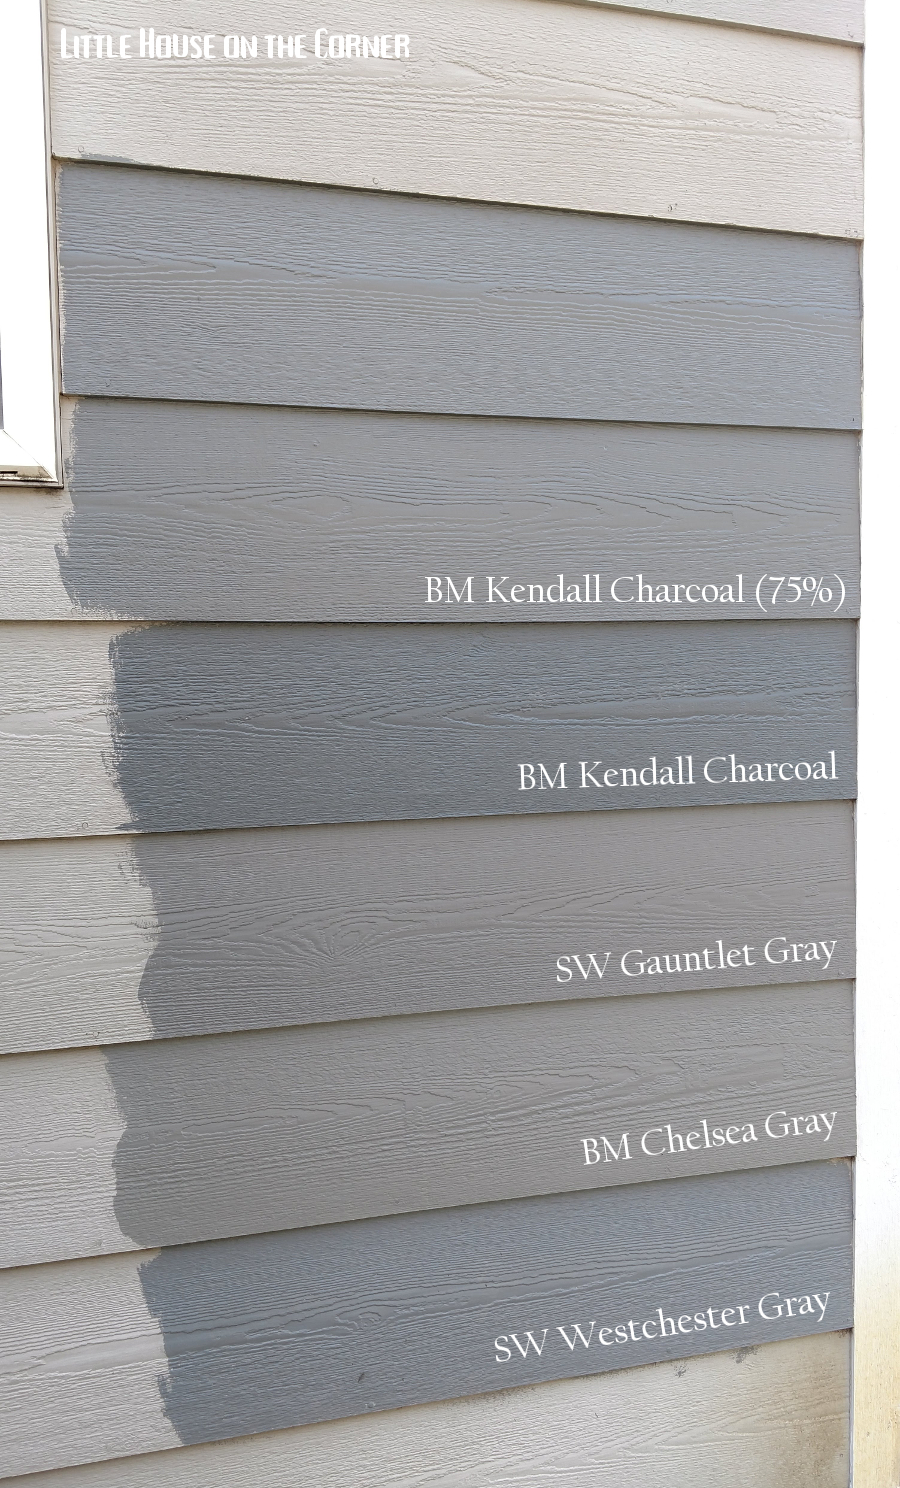 Kendall charcoal sherwin williams tyres2c for Kendall charcoal exterior paint